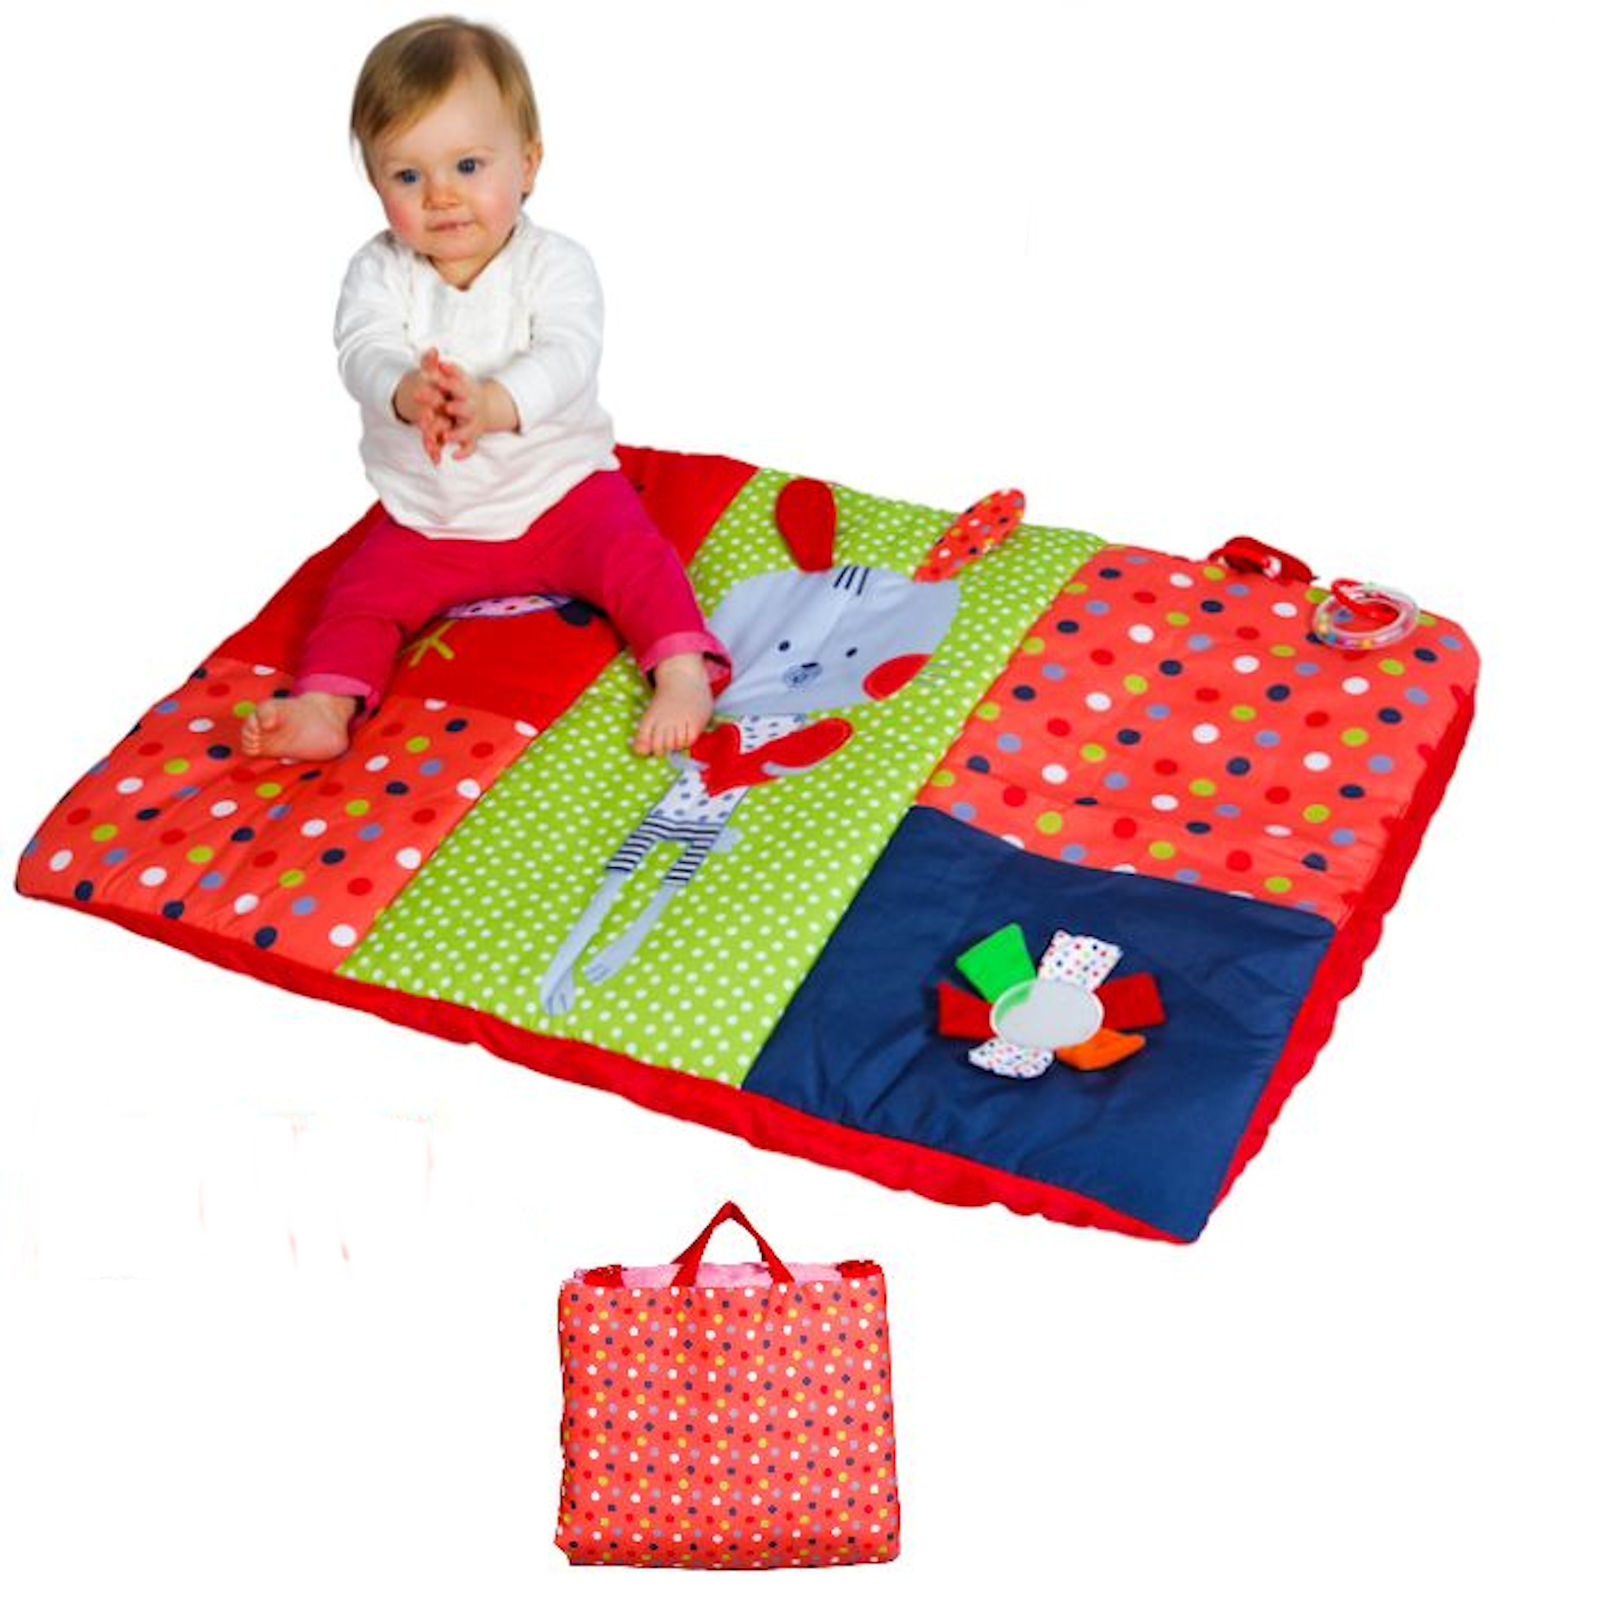 Red Kite Deluxe Baby Activity Play Mat Cotton Tail